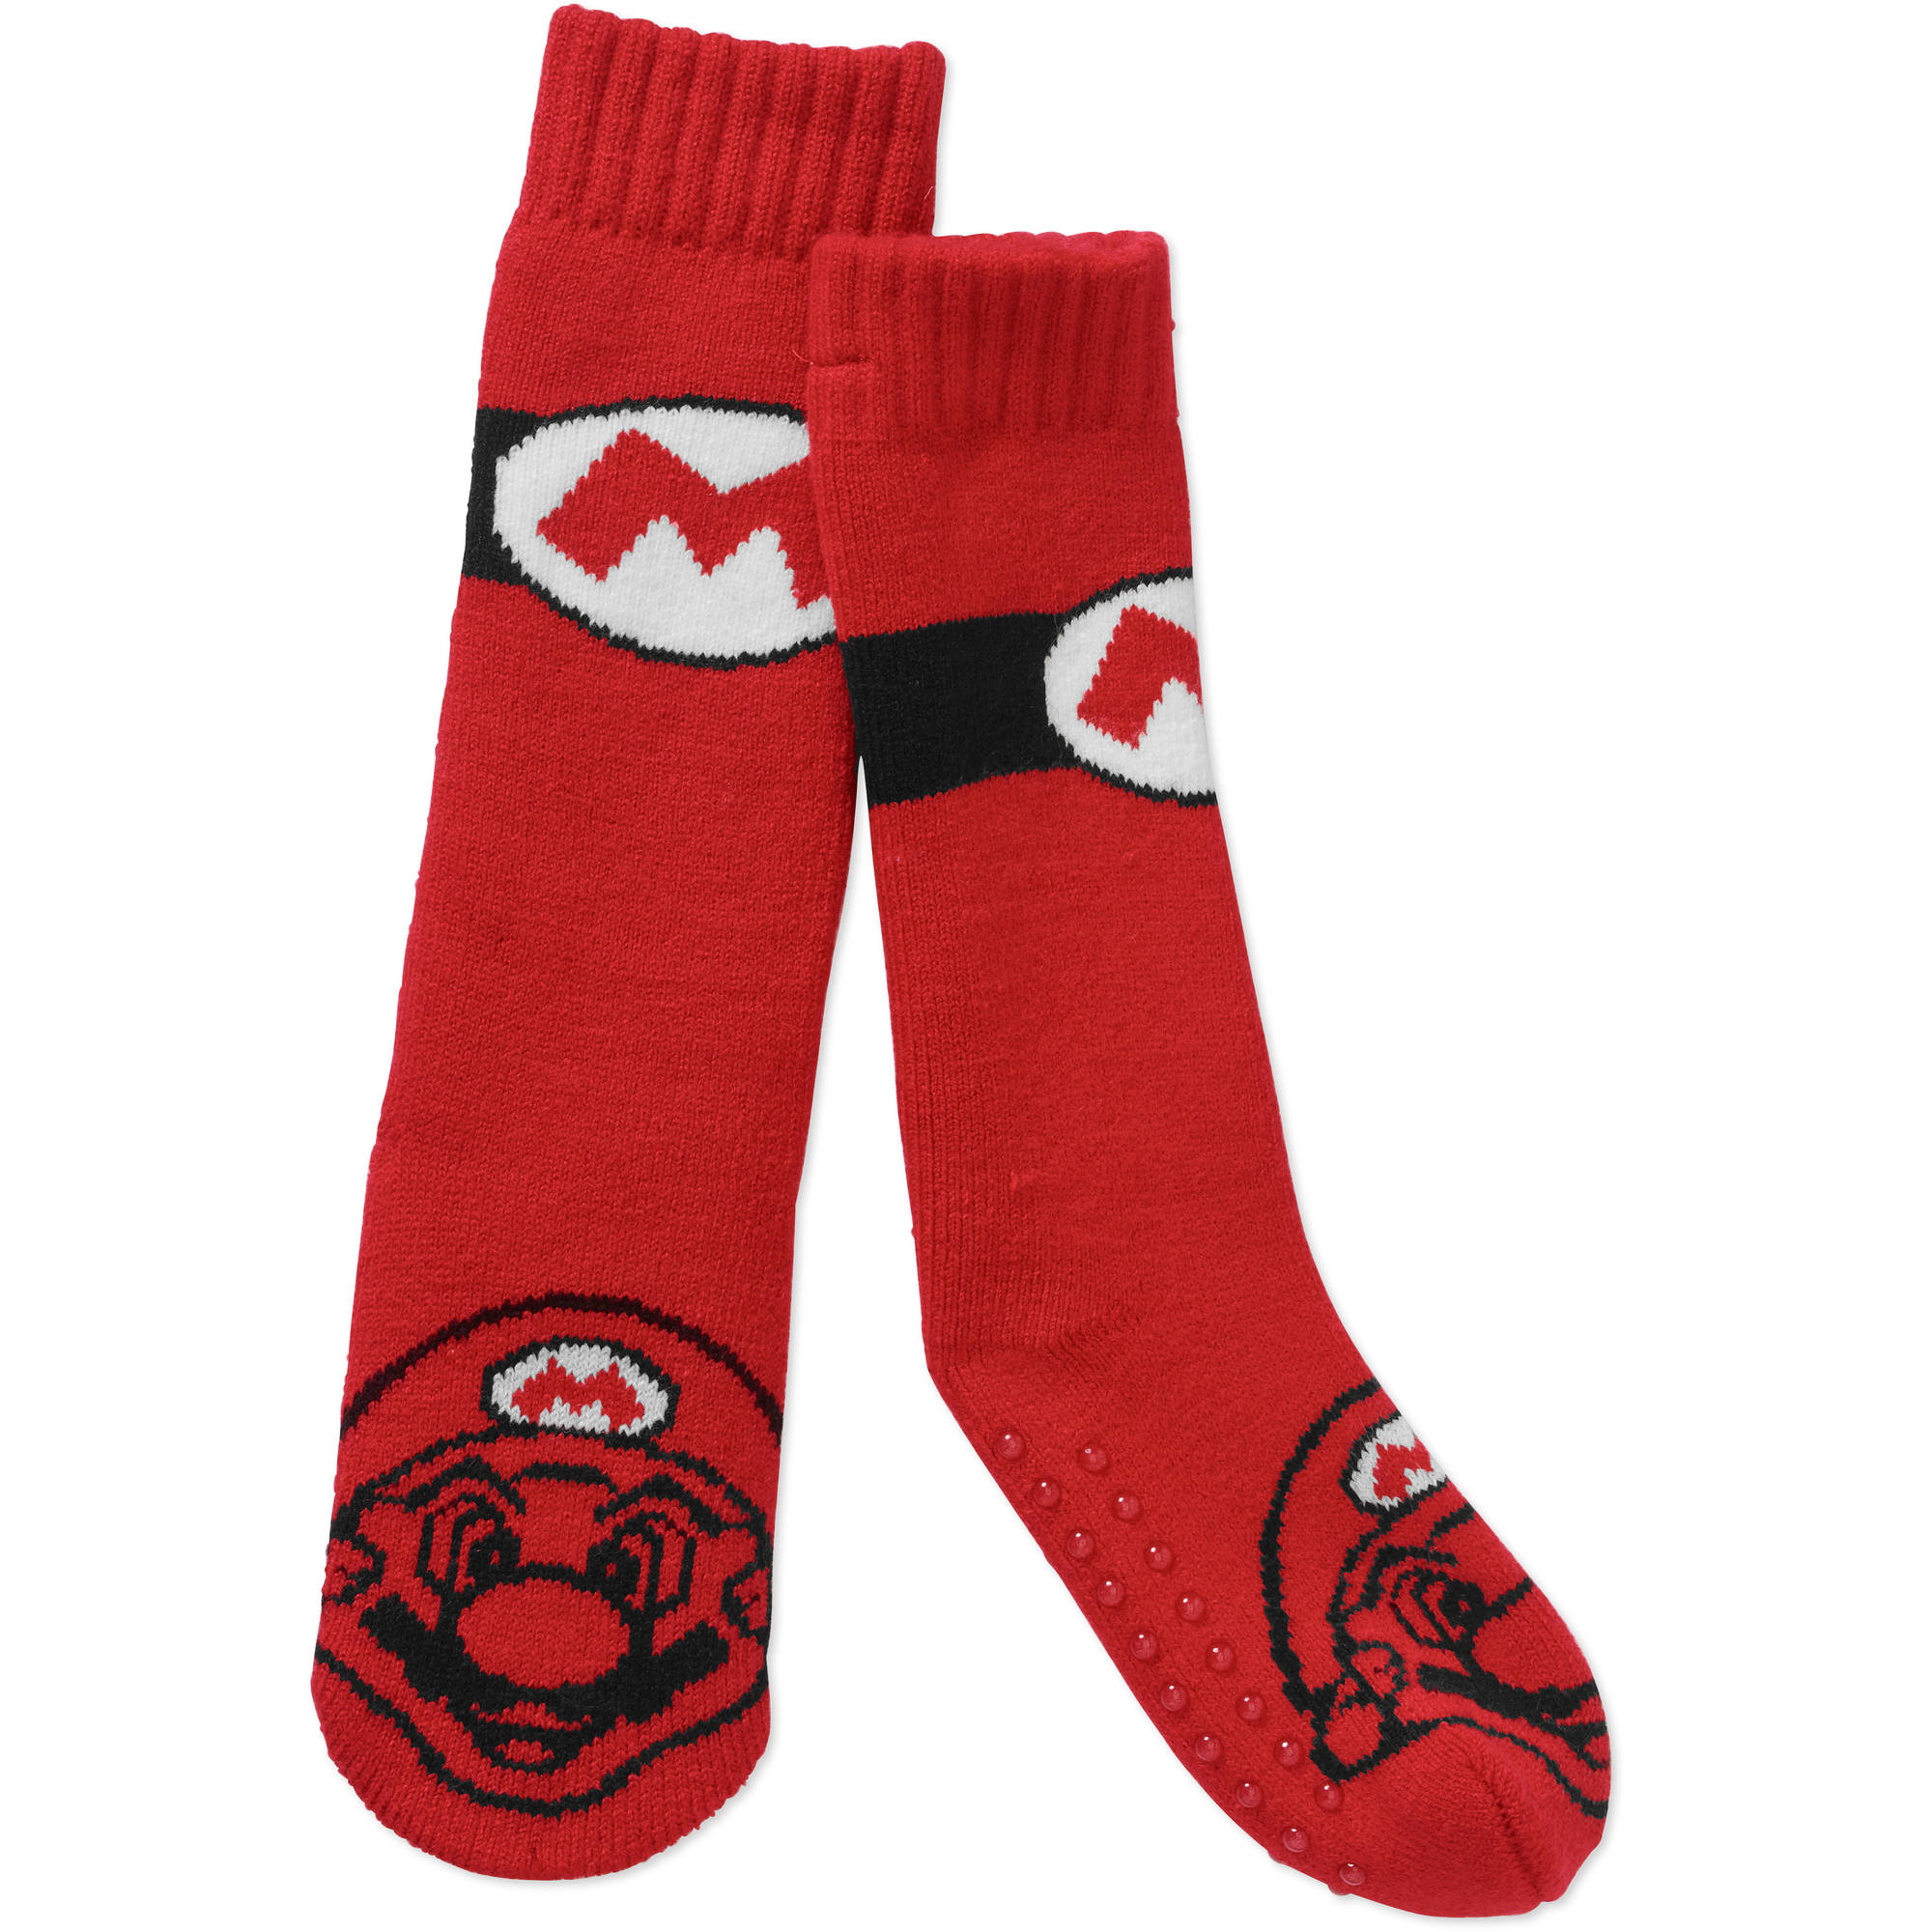 Super Mario Boys Slipper Socks 1 Pack Walmart